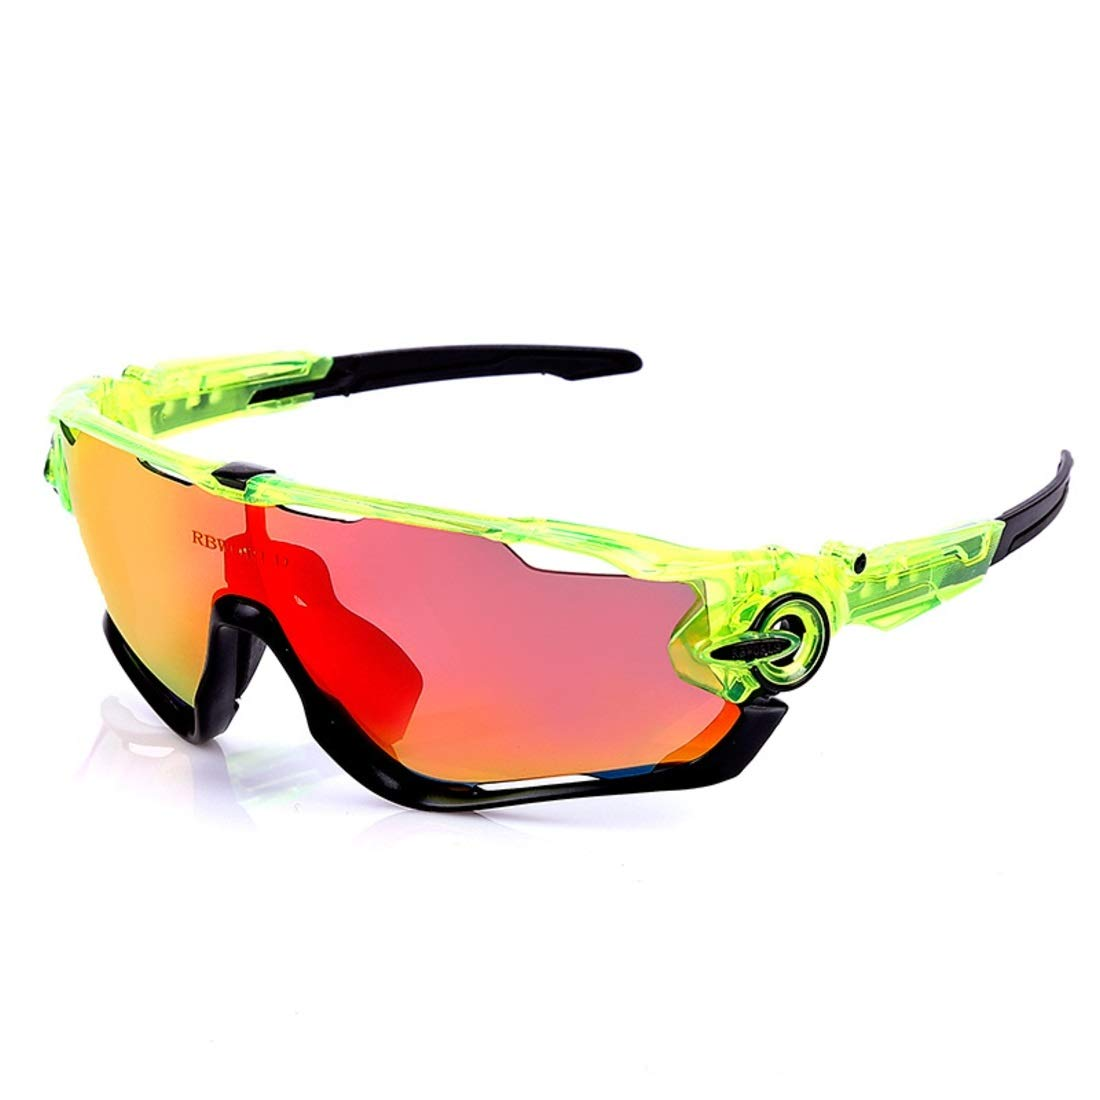 BAOYIT Outdoor Sports Glasses Fishing Windproof Bicycle Mountain Bike Sunglasses Men and Women Goggles Riding Glasses (Color : A) by BAOYIT